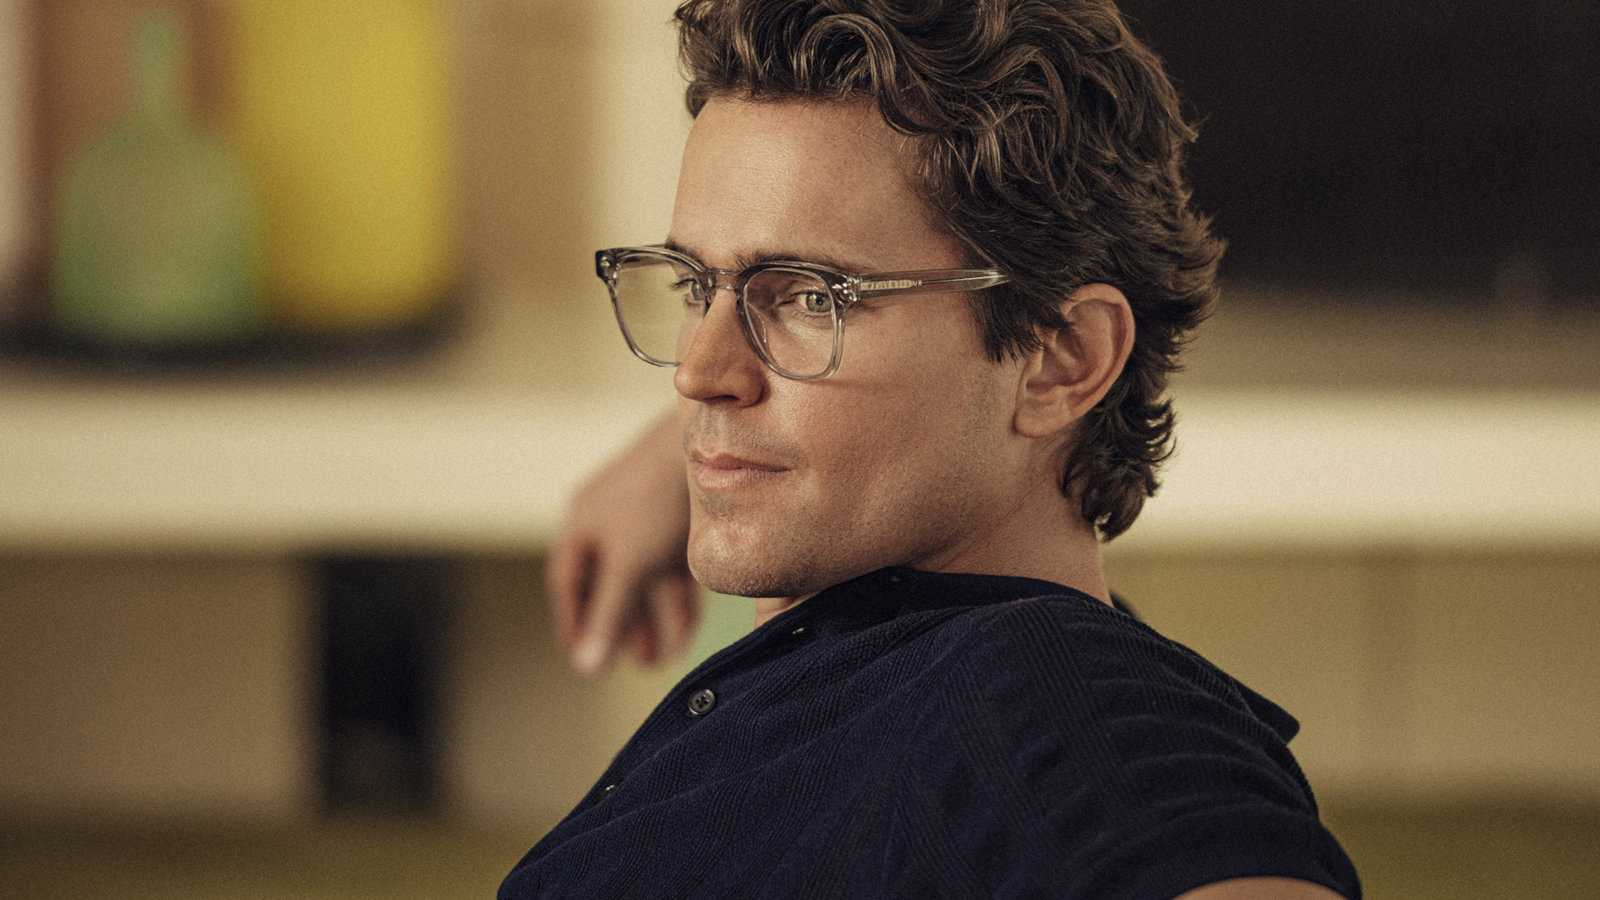 Matt Bomer is a hunky gay actor who's married with three sons